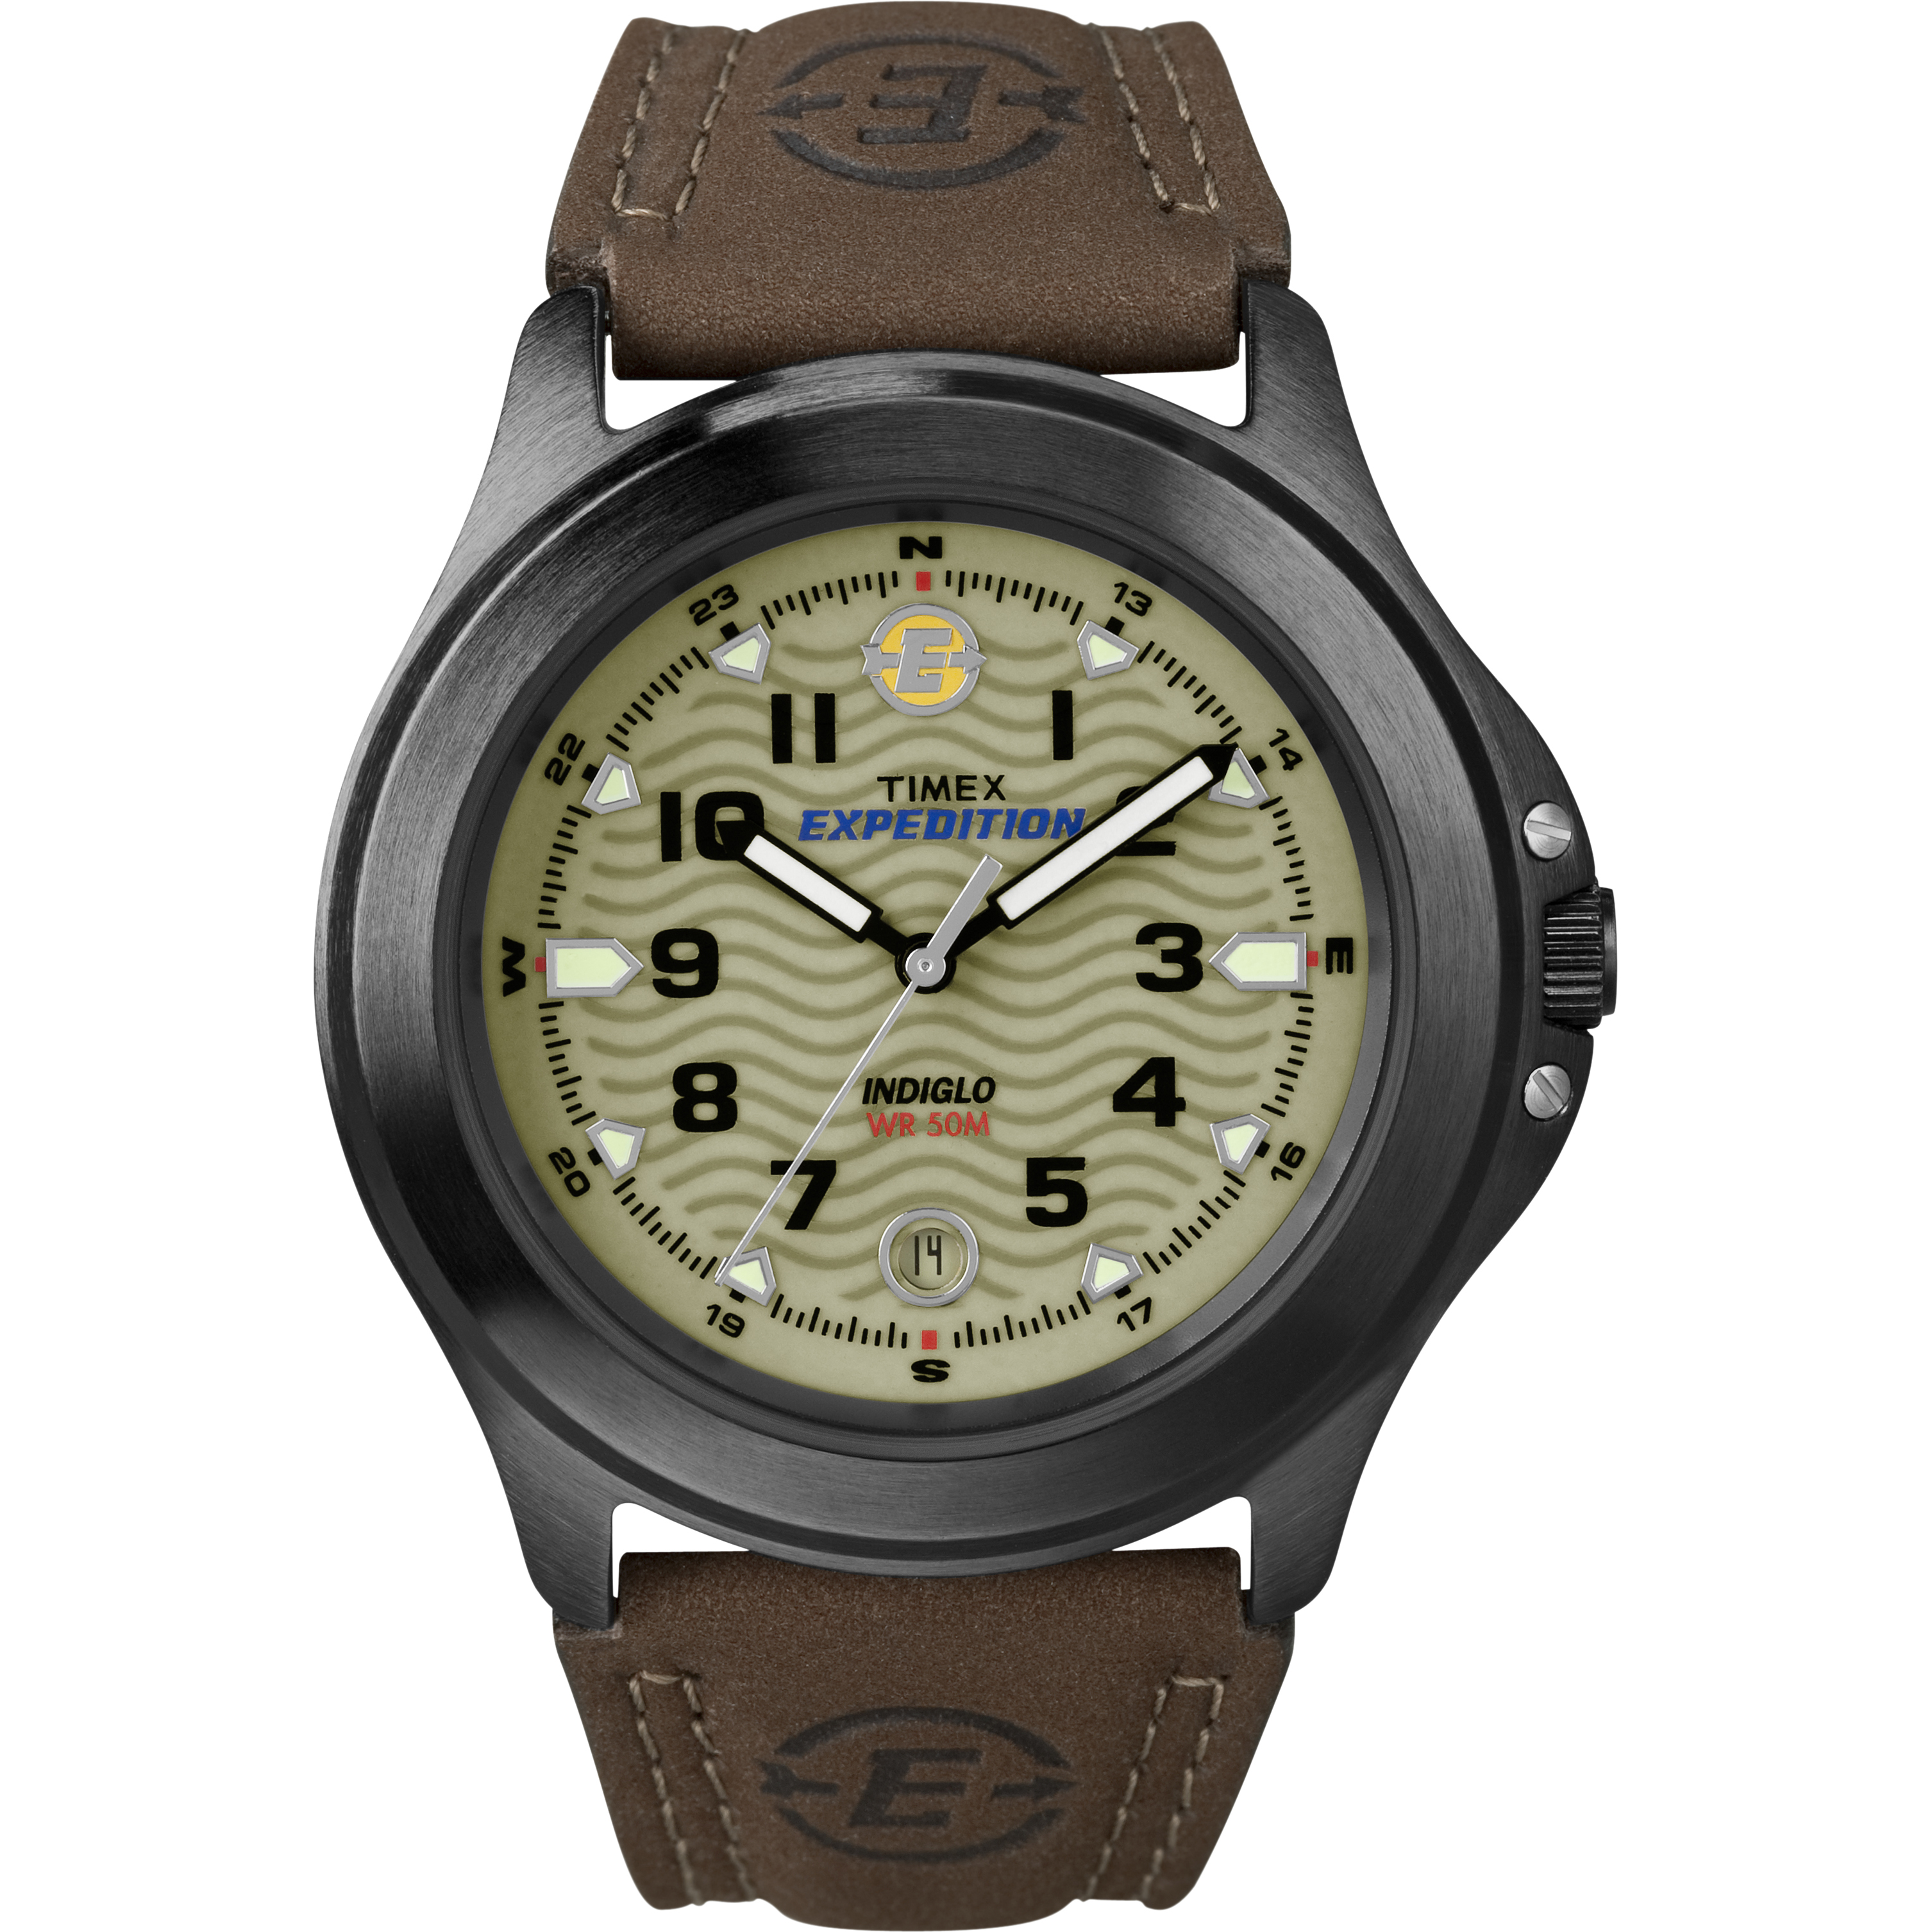 Timex Men's Expedition   Field Metal Indiglo Leather Band Date   Watch T47012 by Timex